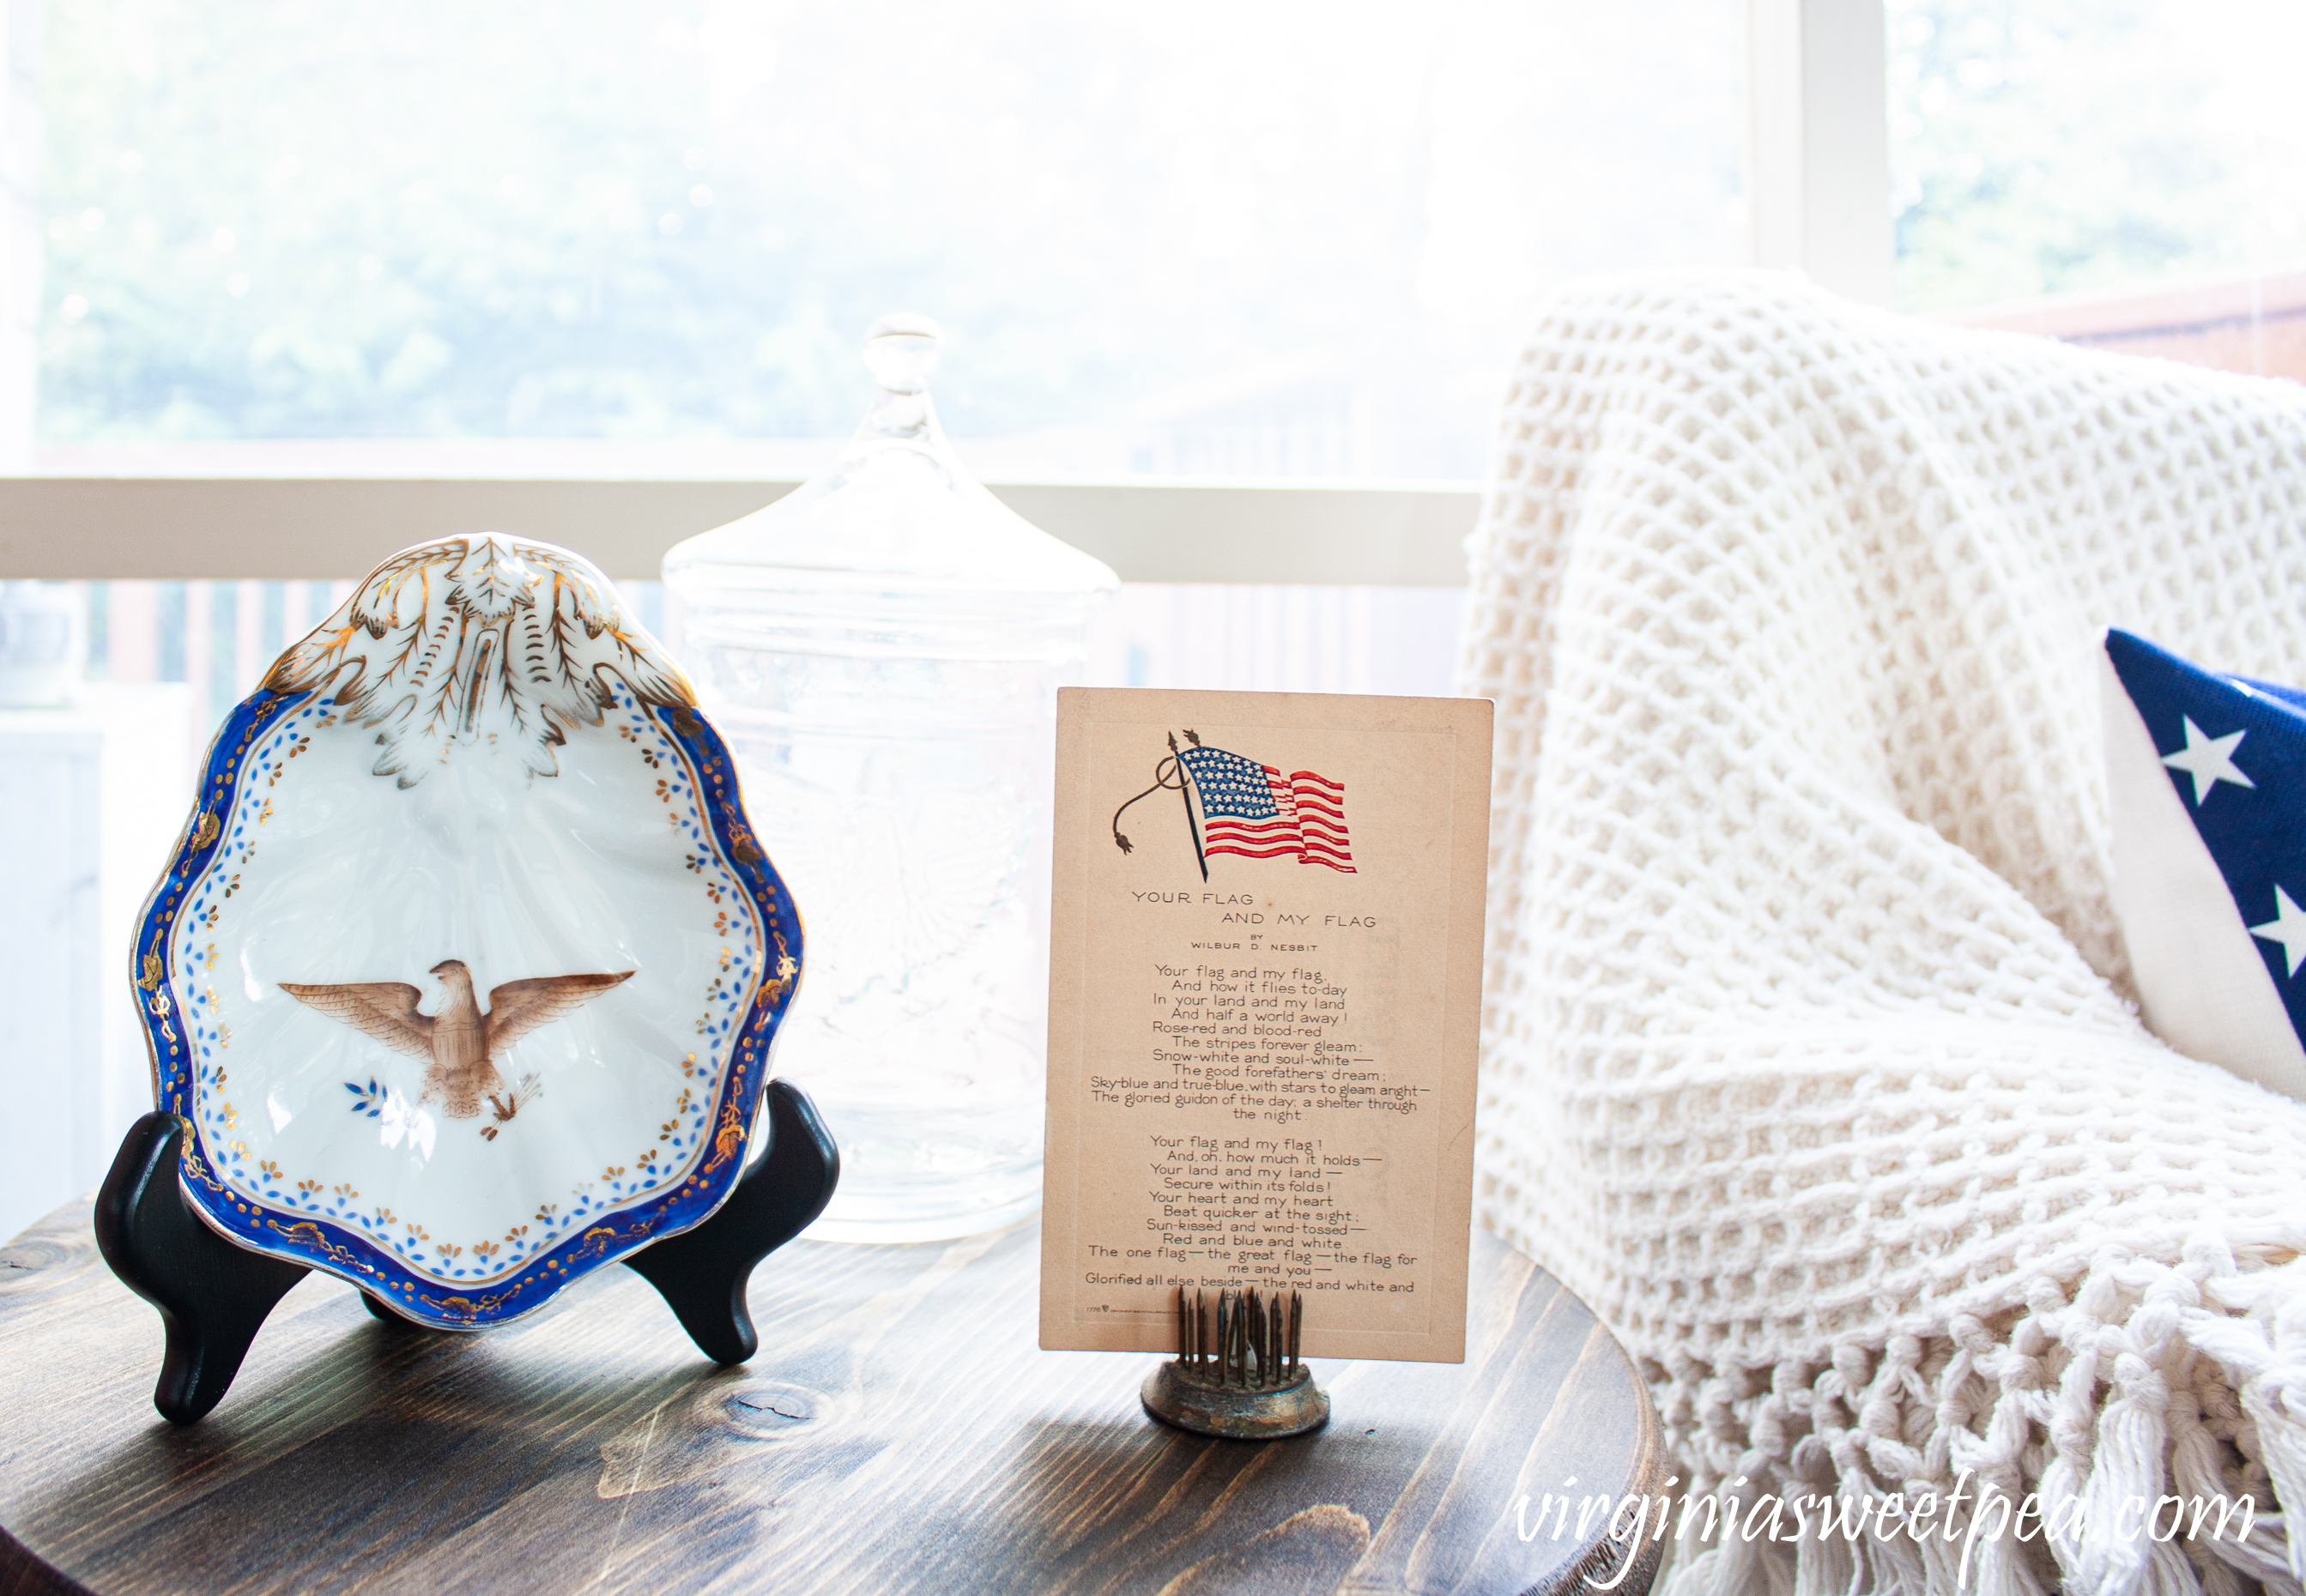 Antique bowl with an eagle and a Wilbur D. Nesbit Your Flag and My Flag postcard